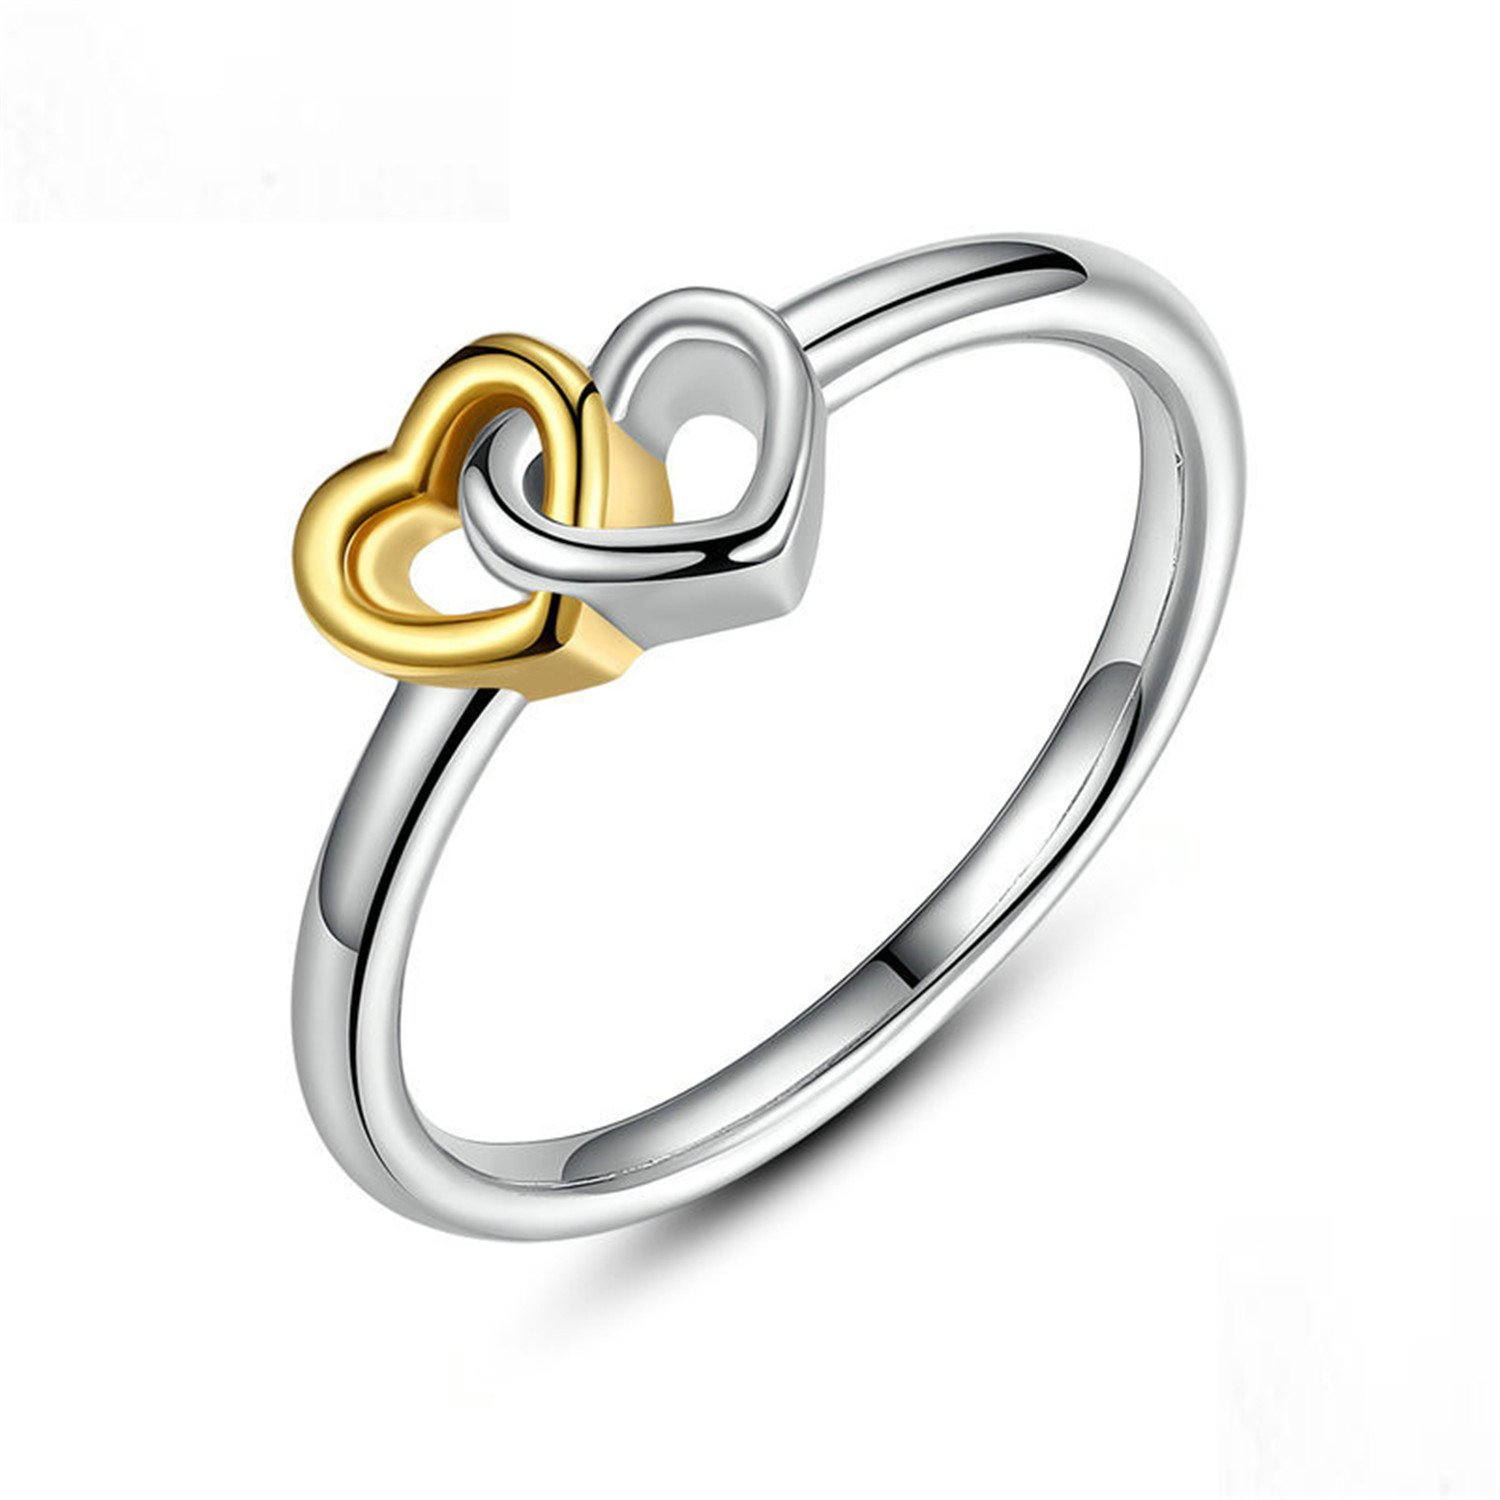 Baqijian Summer Collection Sterling Heart To Heart Ring Double Heart Jewelry Women Pa7173